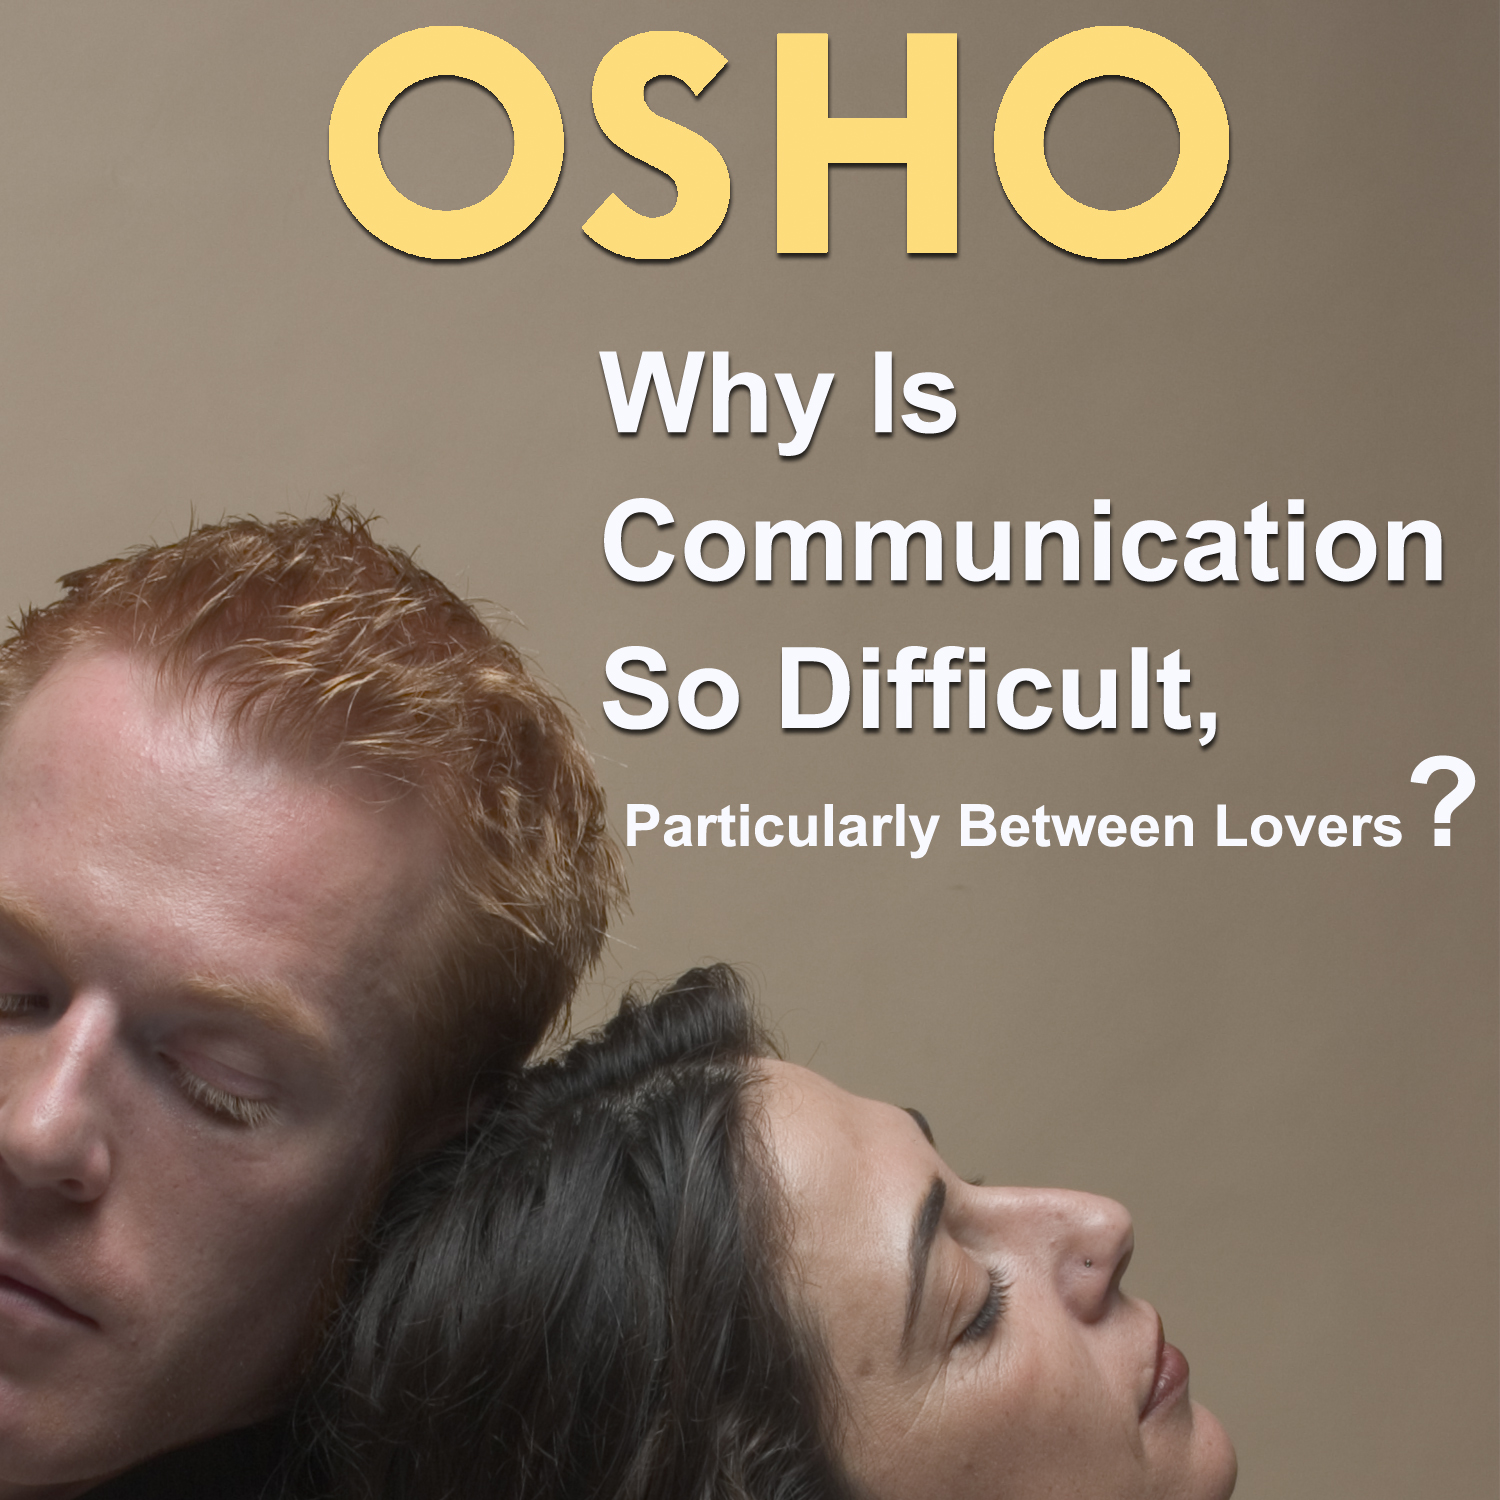 Osho-Why-Is-Communication-So-Difficult1